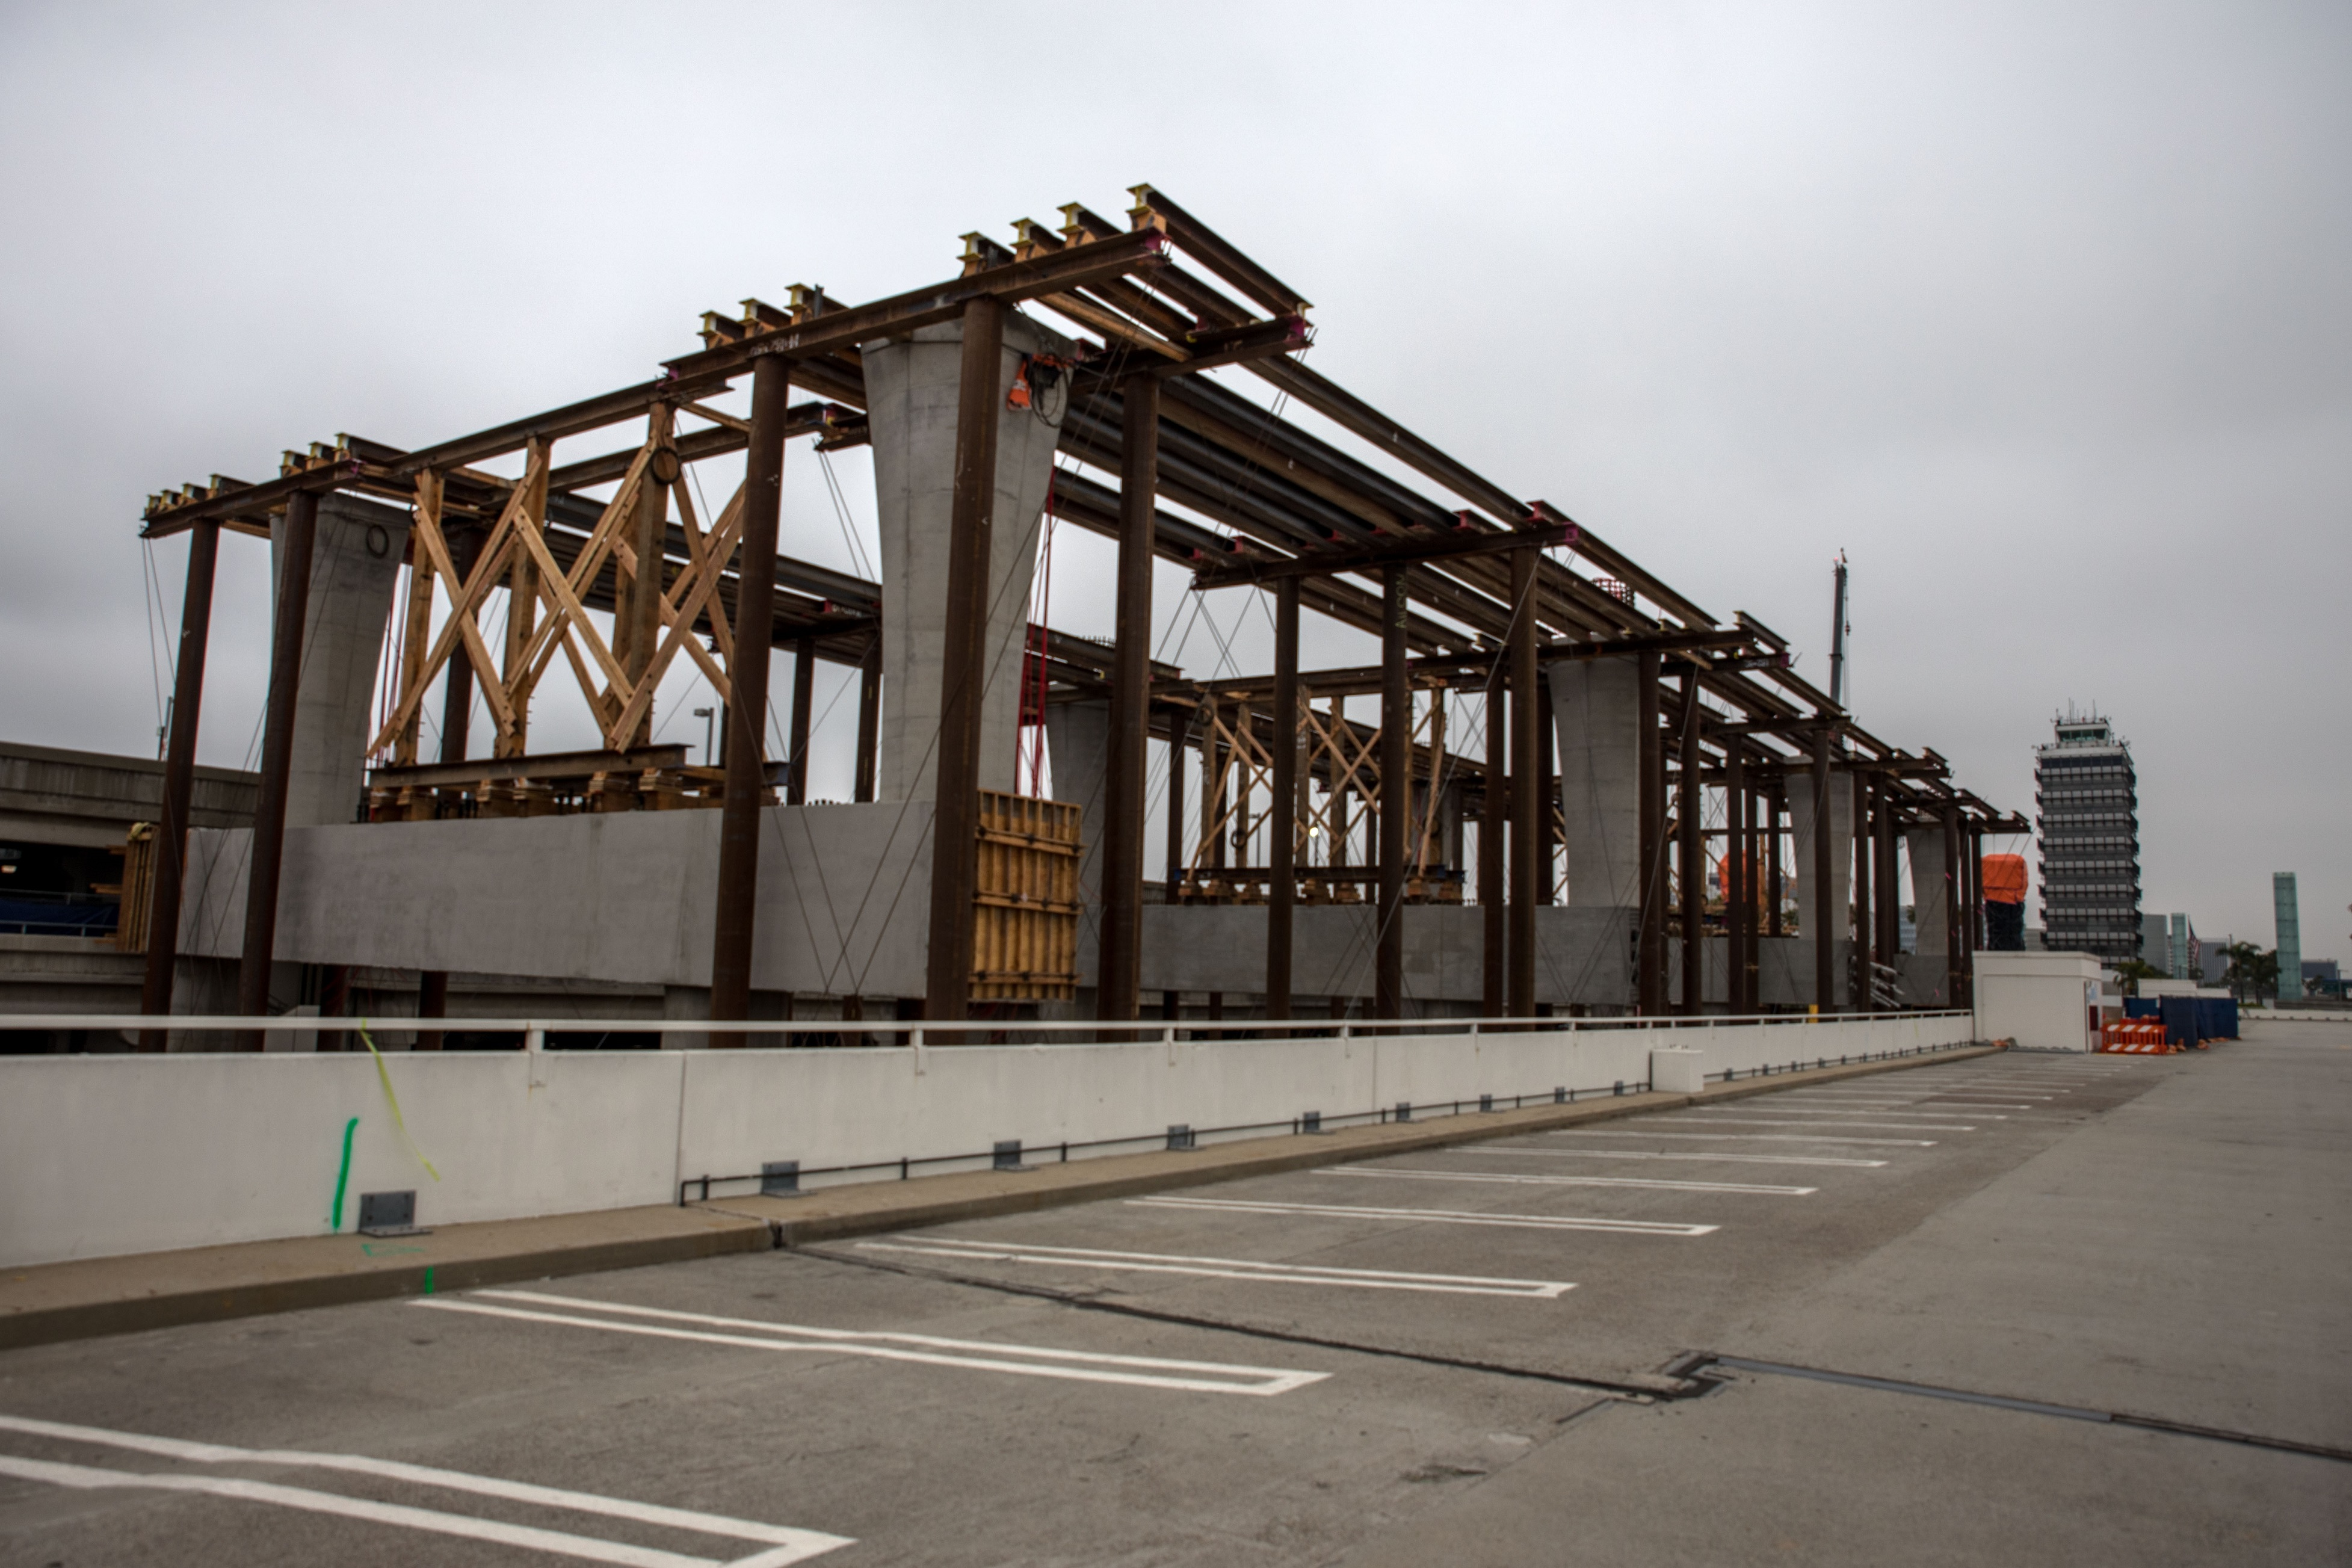 Falsework is erected to enable guideway construction at the future East CTA station.